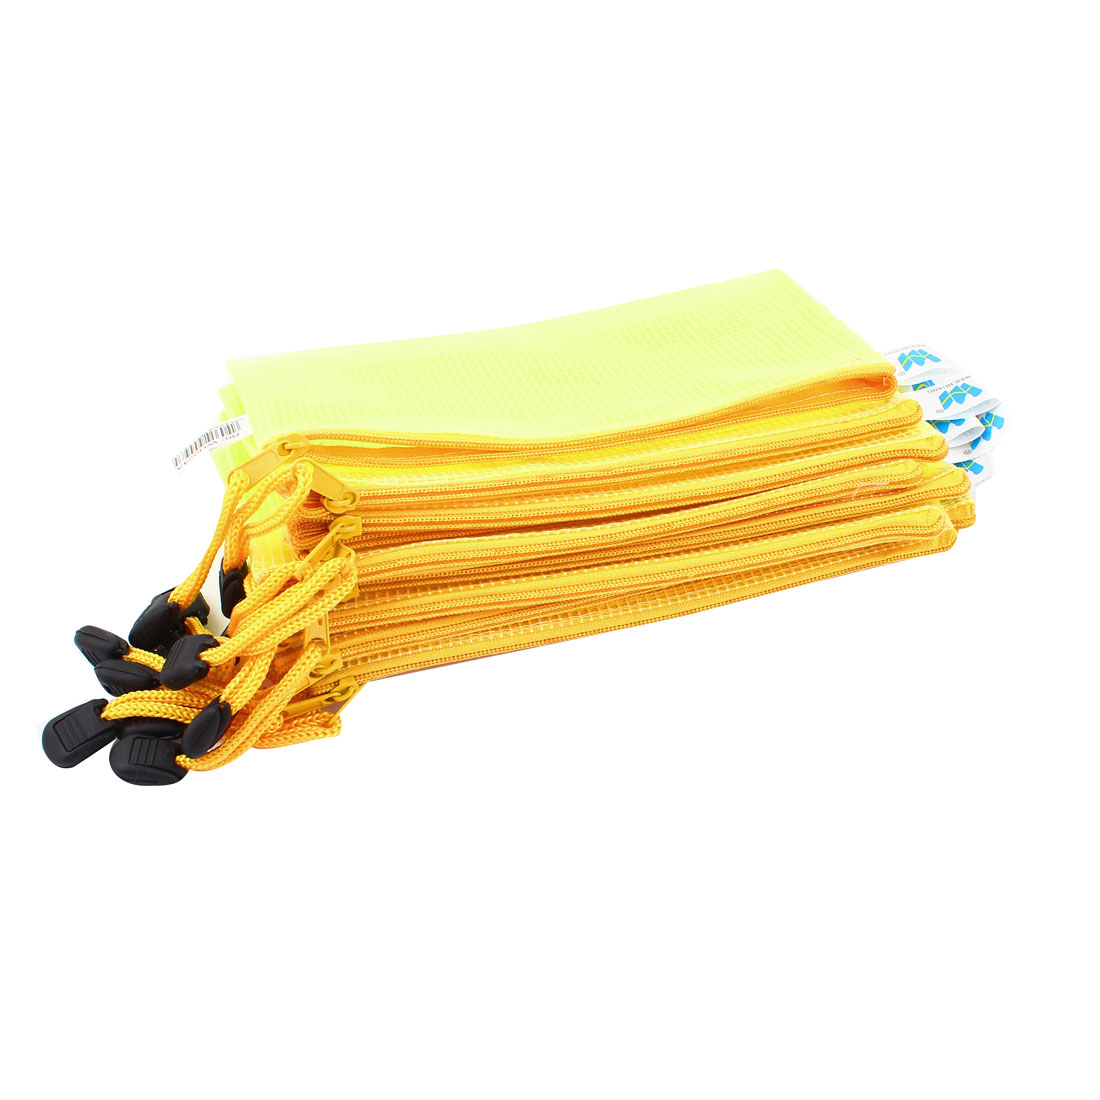 Student Office Plastic Zip Up Mesh File Storage Bag Yellow 18.5 x 11cm 12 Pcs